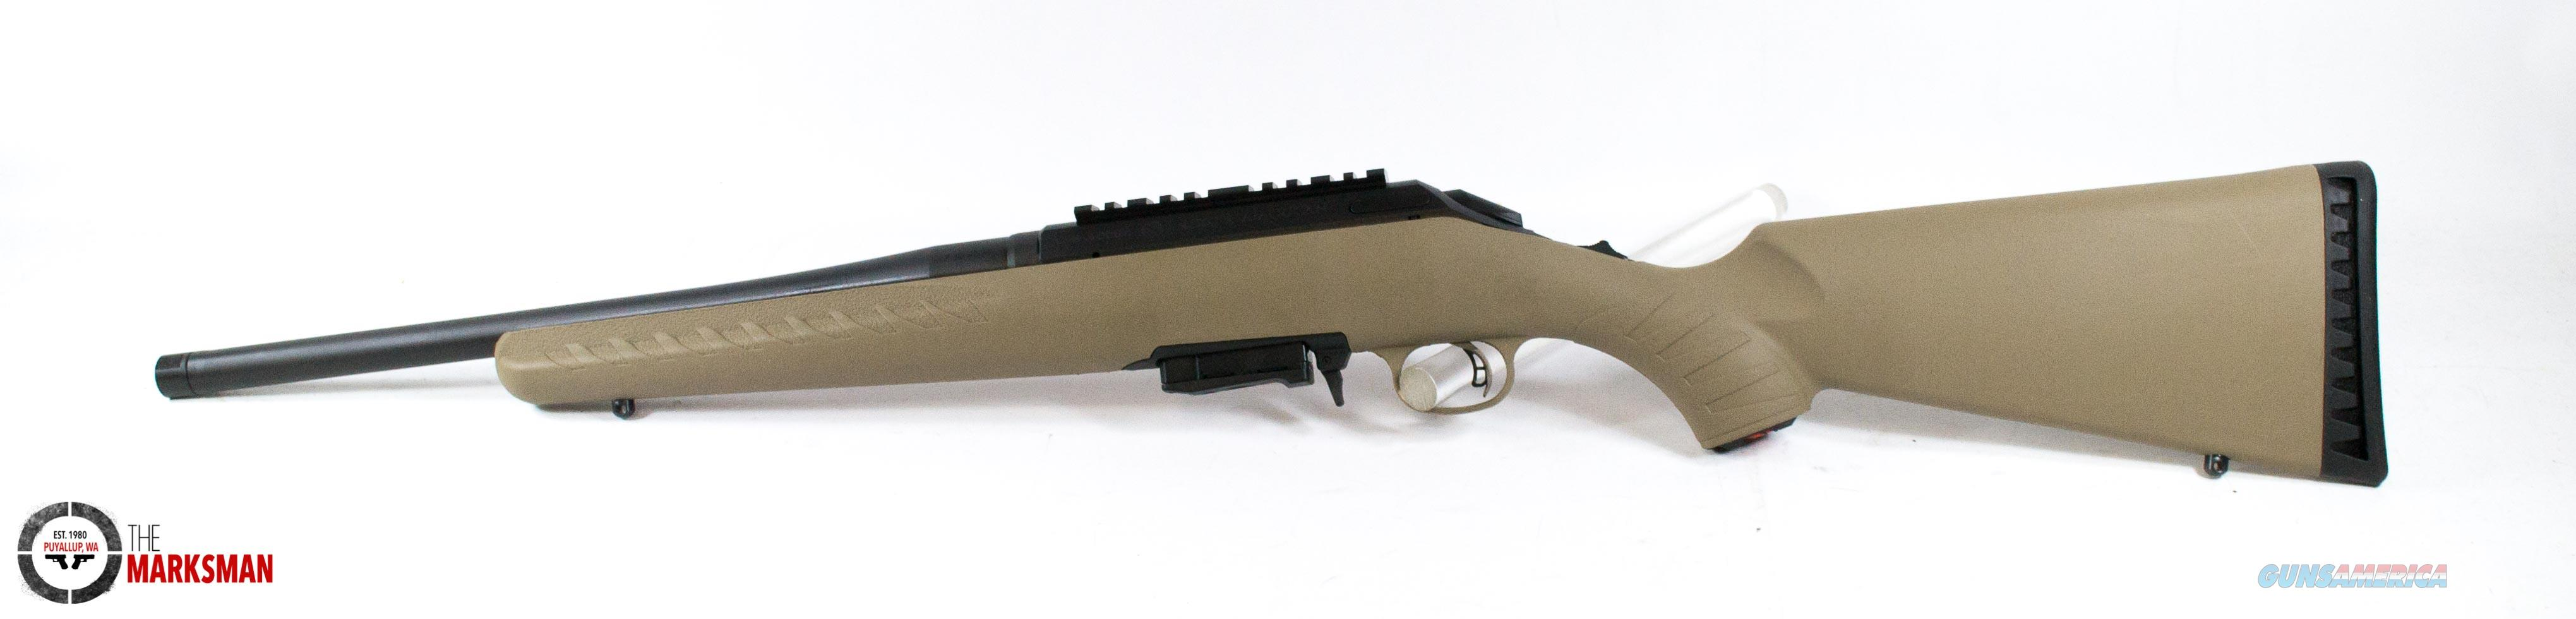 Ruger American Rifle Ranch, 7.62x39  Guns > Rifles > Ruger Rifles > American Rifle